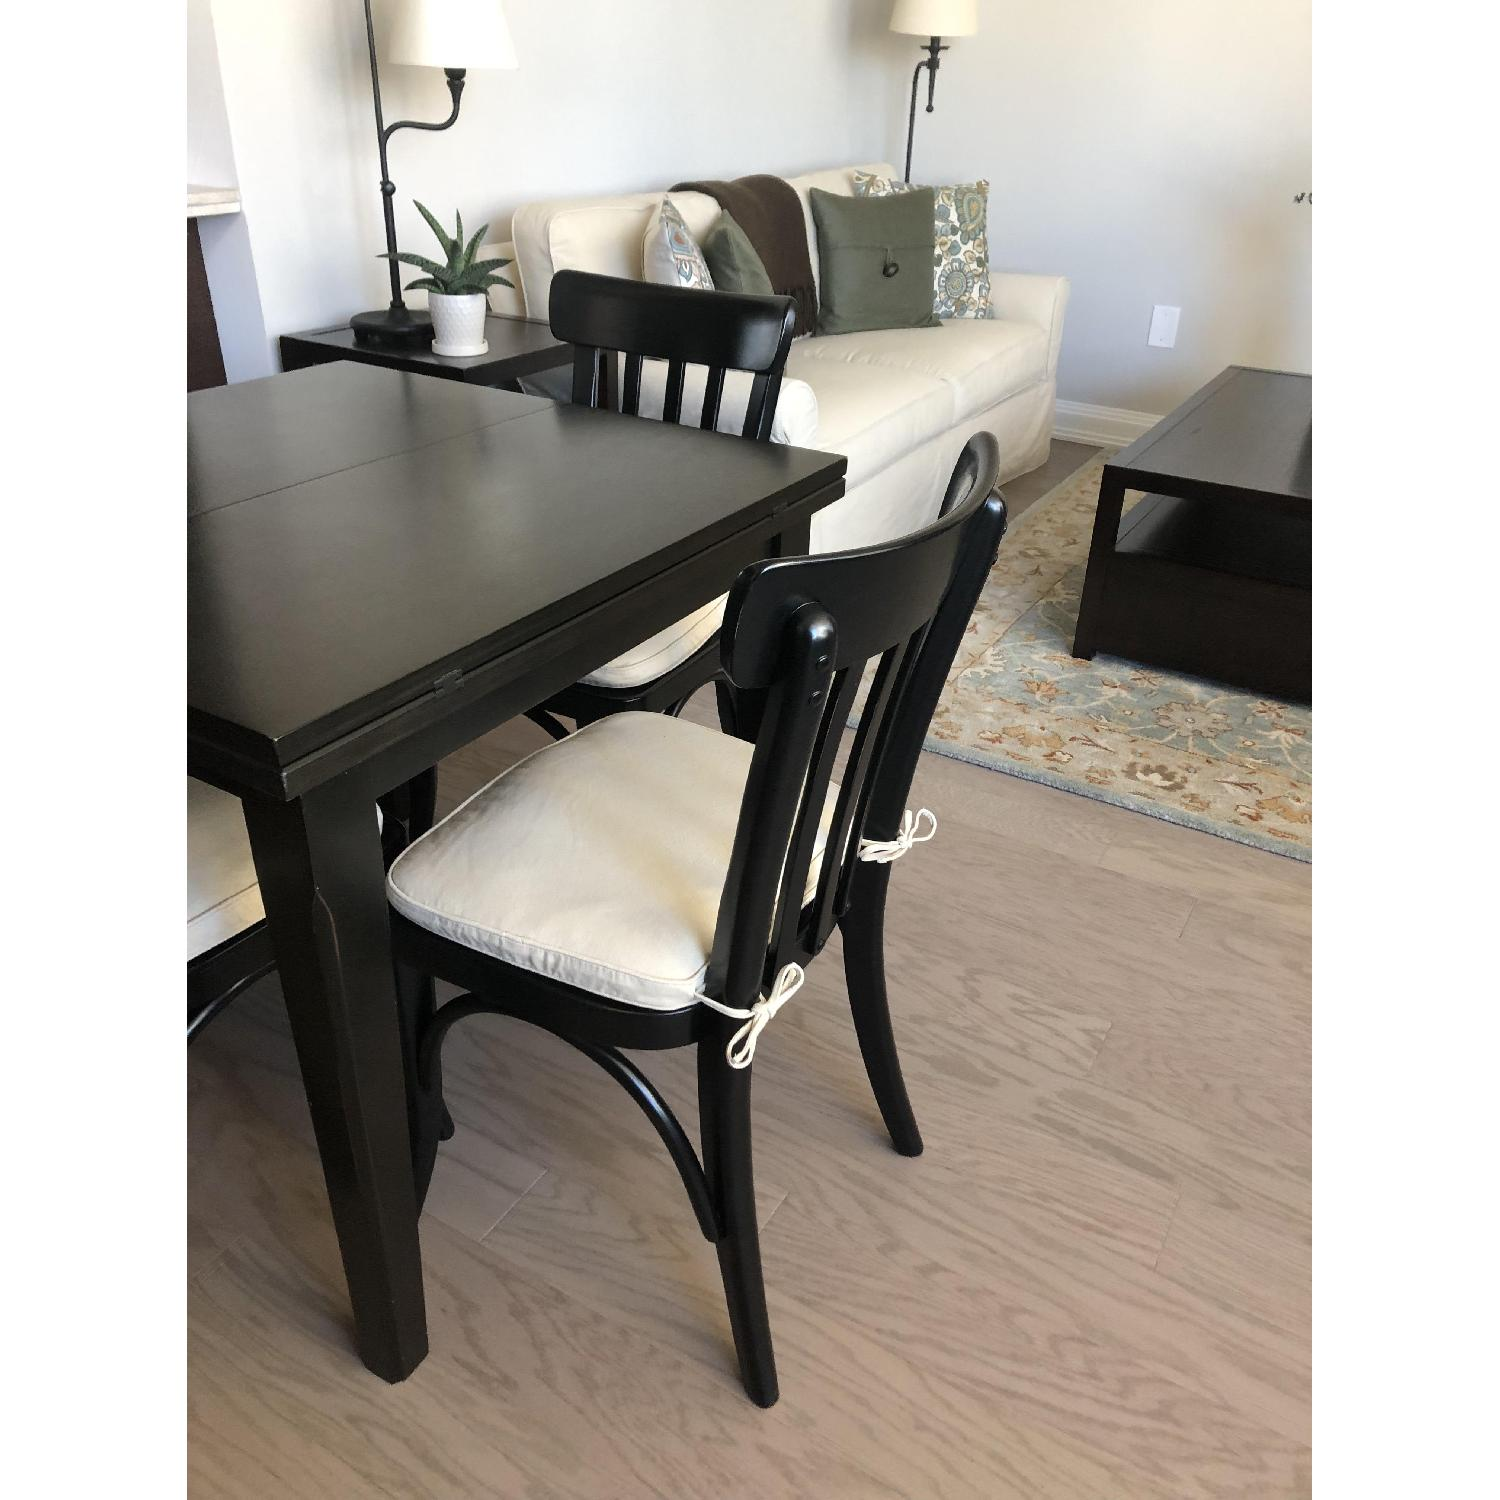 Pottery Barn Maren Dining Table-1